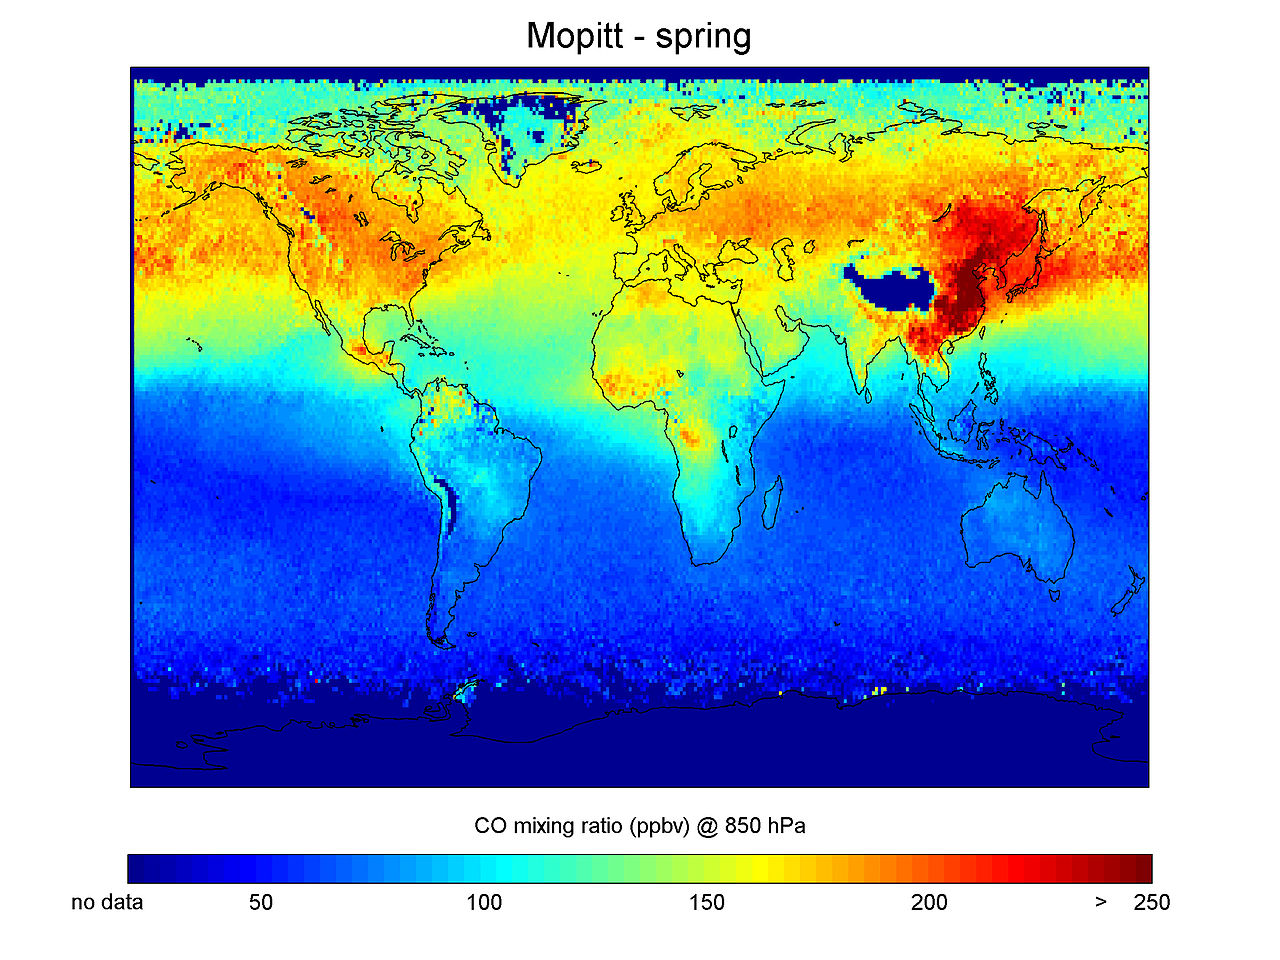 Carbon Monoxide concentrations in Northern Hemisphere spring as measured with the MOPITT instrument.